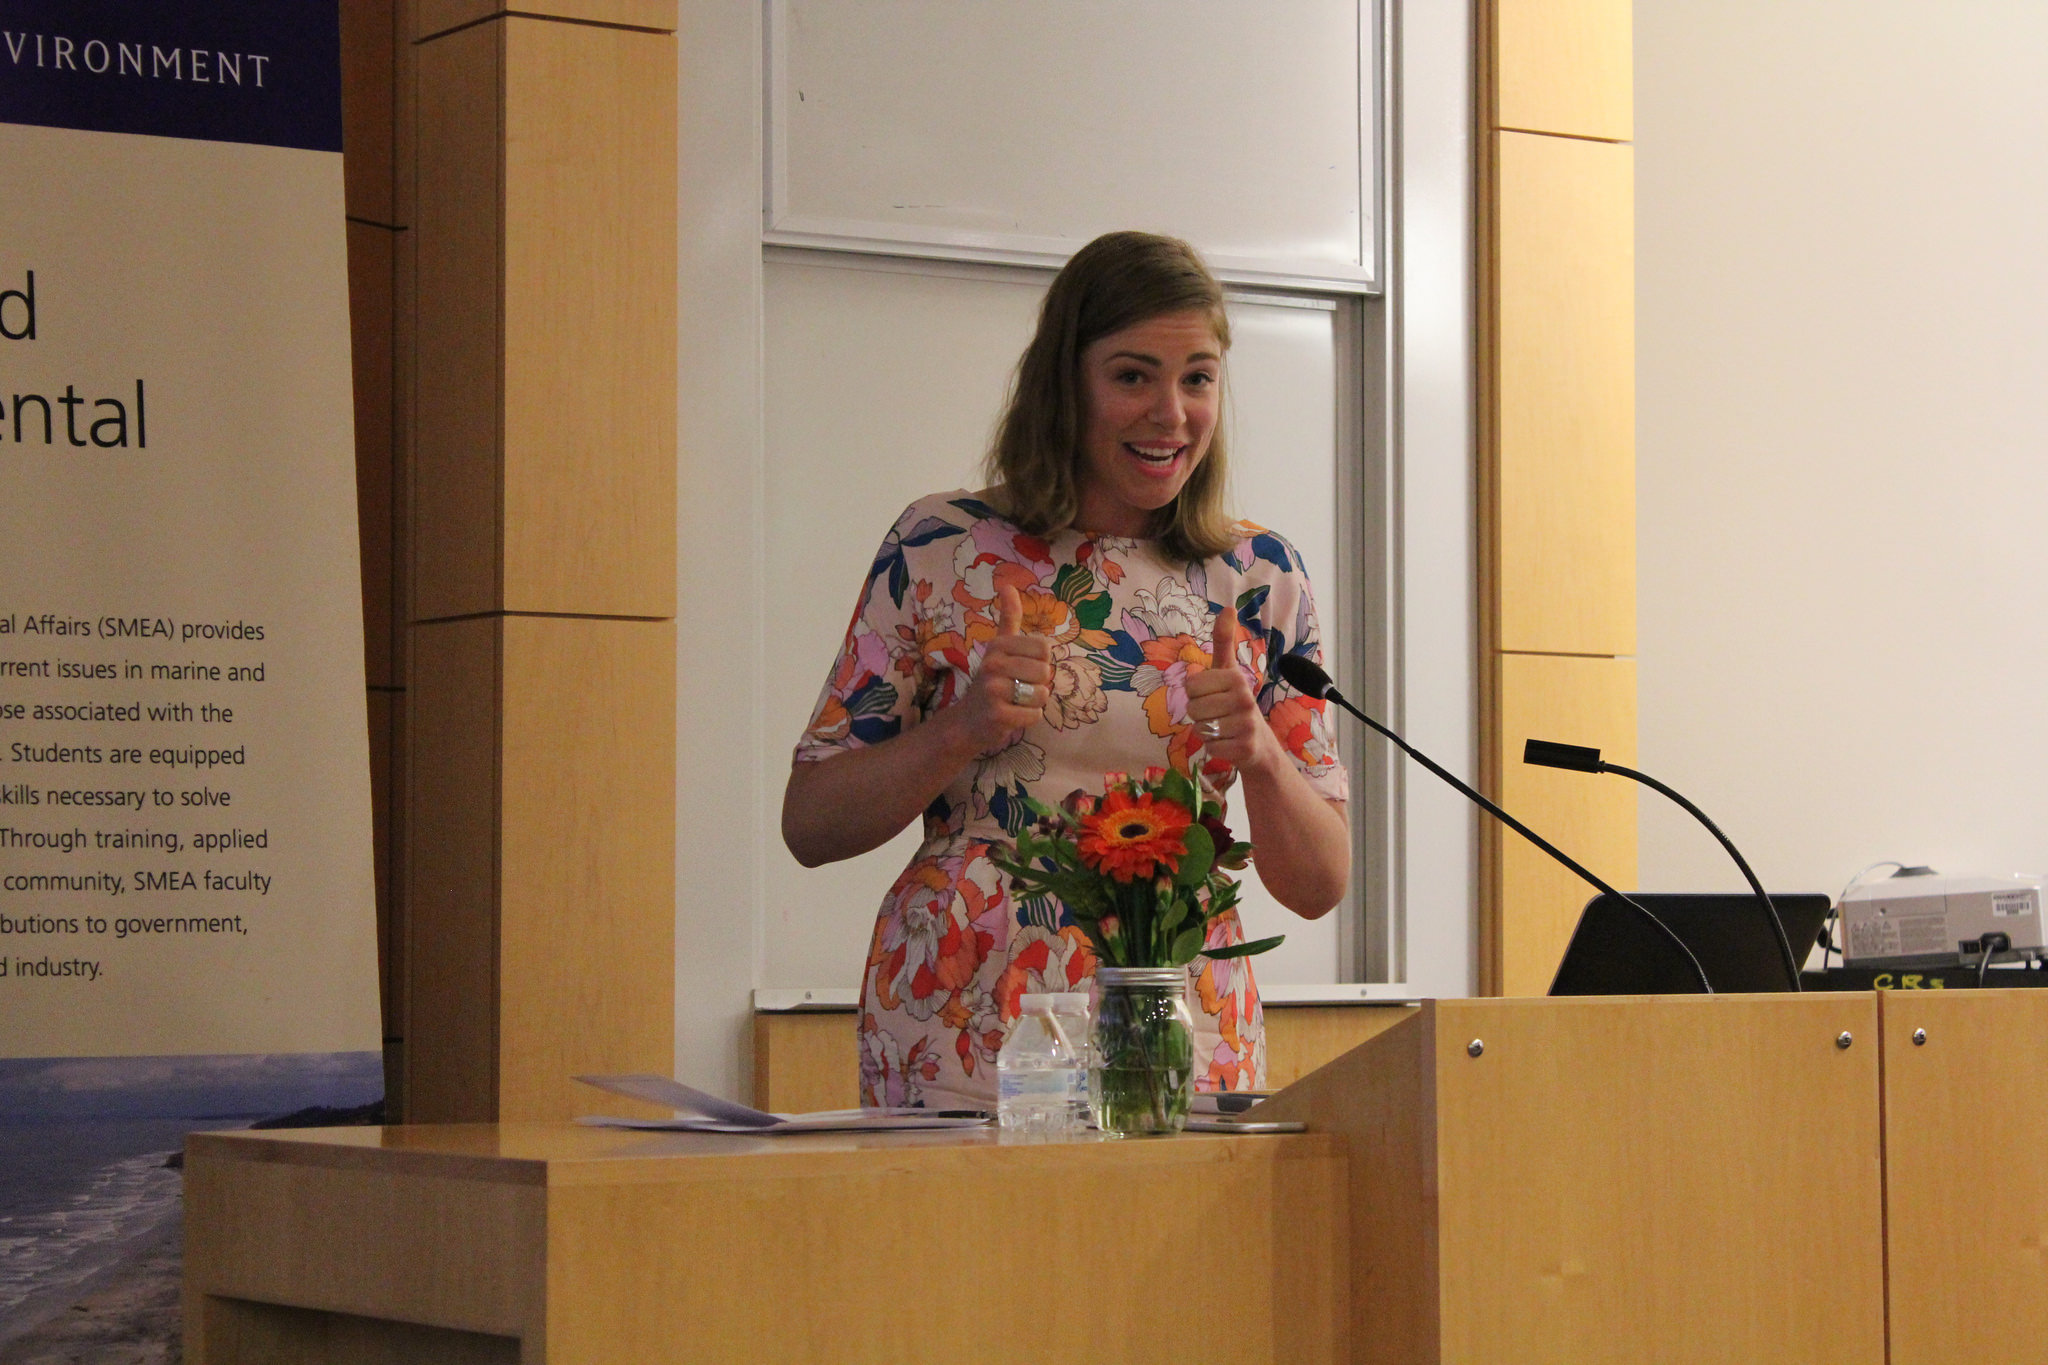 Claire Dawson speaks to her fellow class as one of two student speakers.